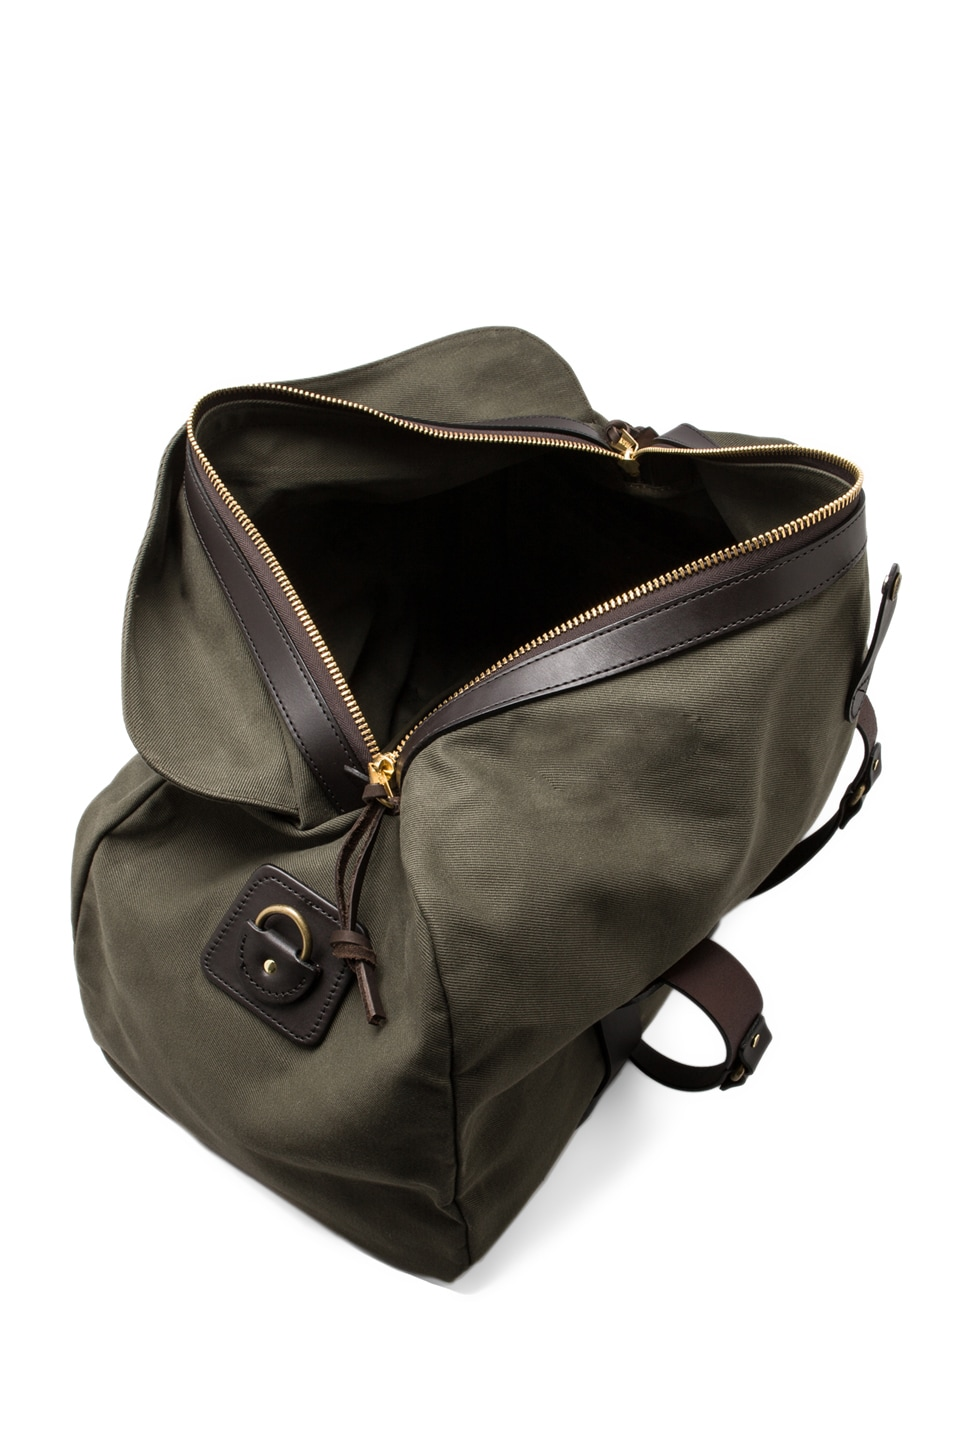 Filson Medium Duffle in Otter Green